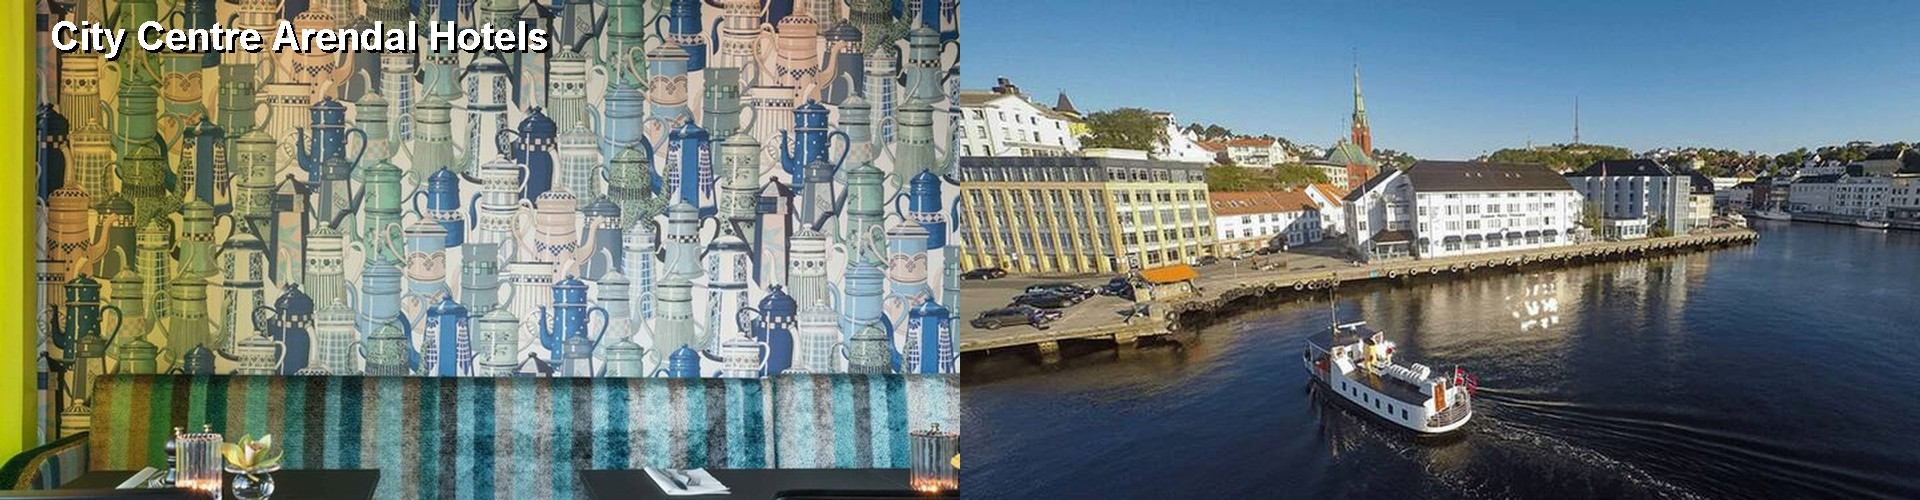 4 Best Hotels near City Centre Arendal